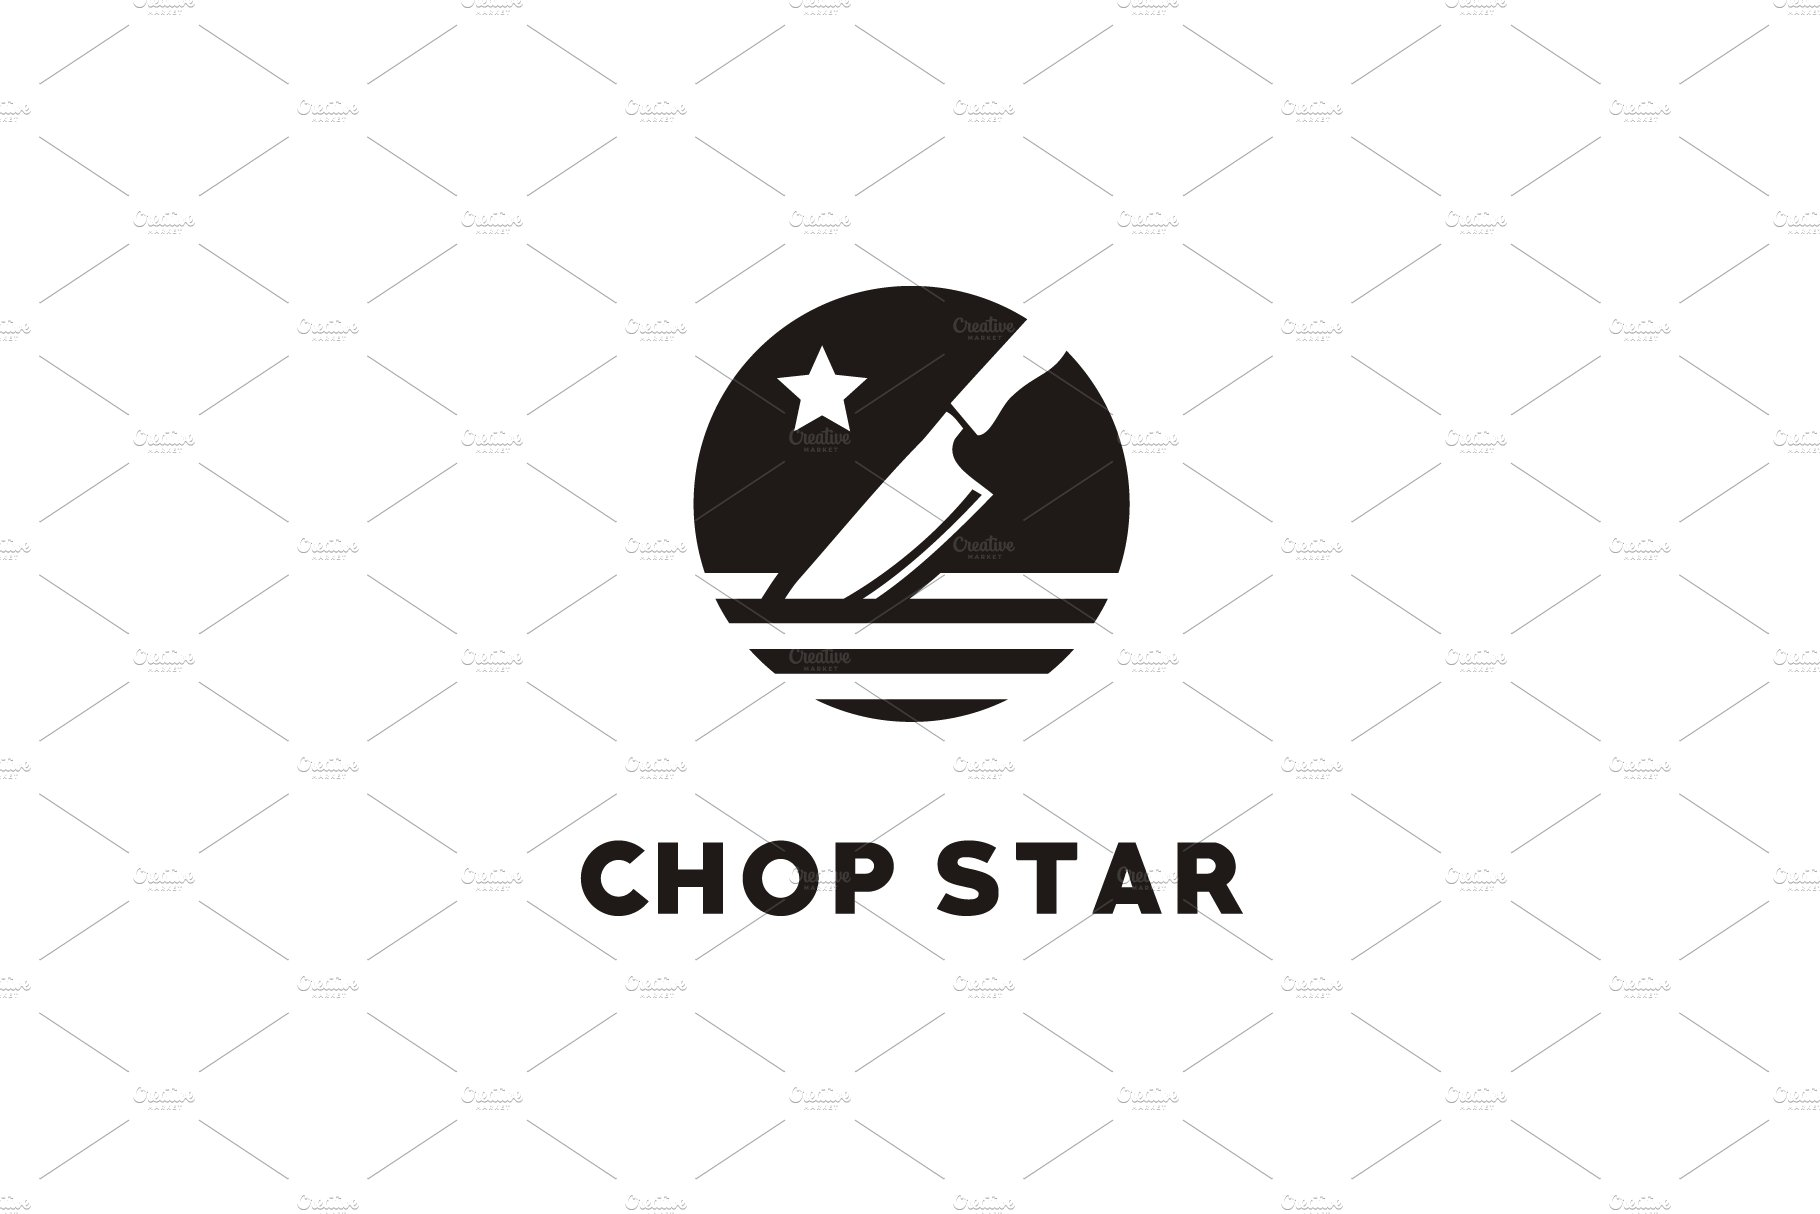 Chop Star / Chef Knife logo design.